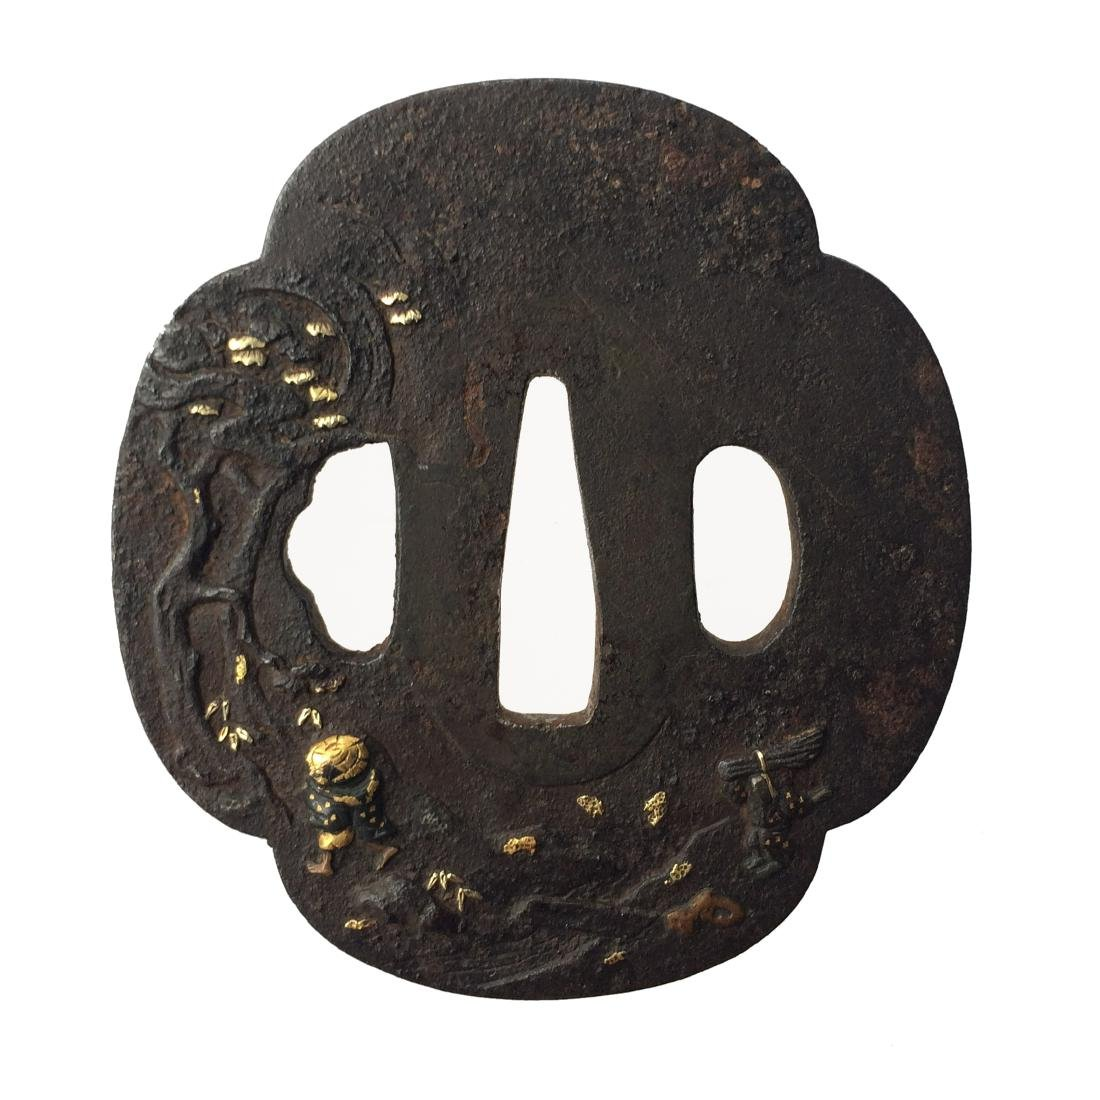 Signed iron tsuba carved and inlaid with gold, copper, - 3